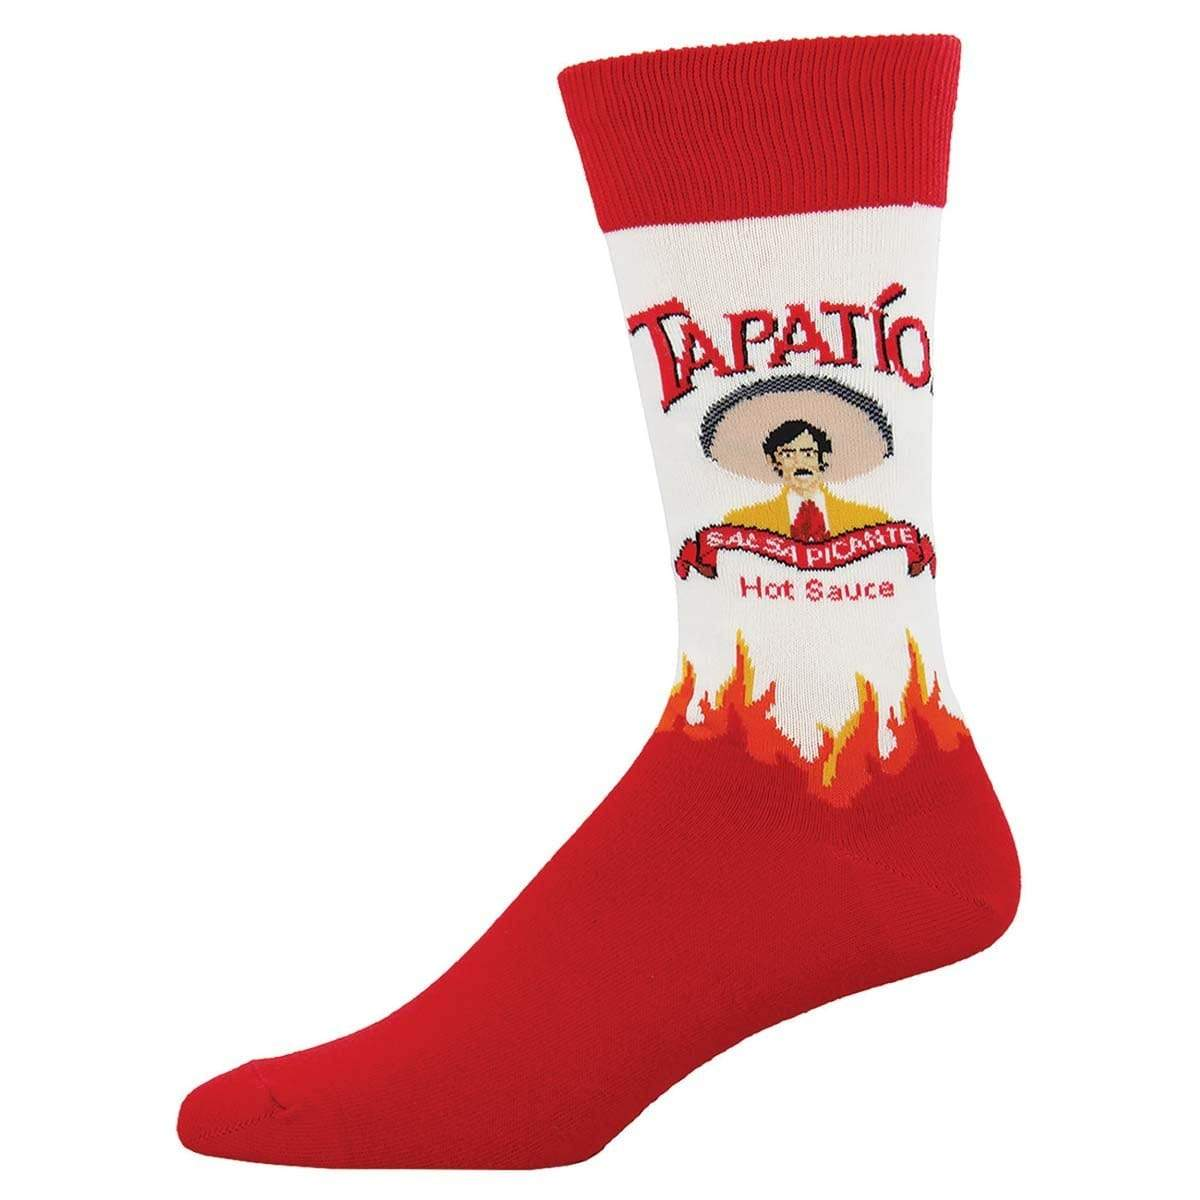 Tapatio Men's Crew Sock Red and White